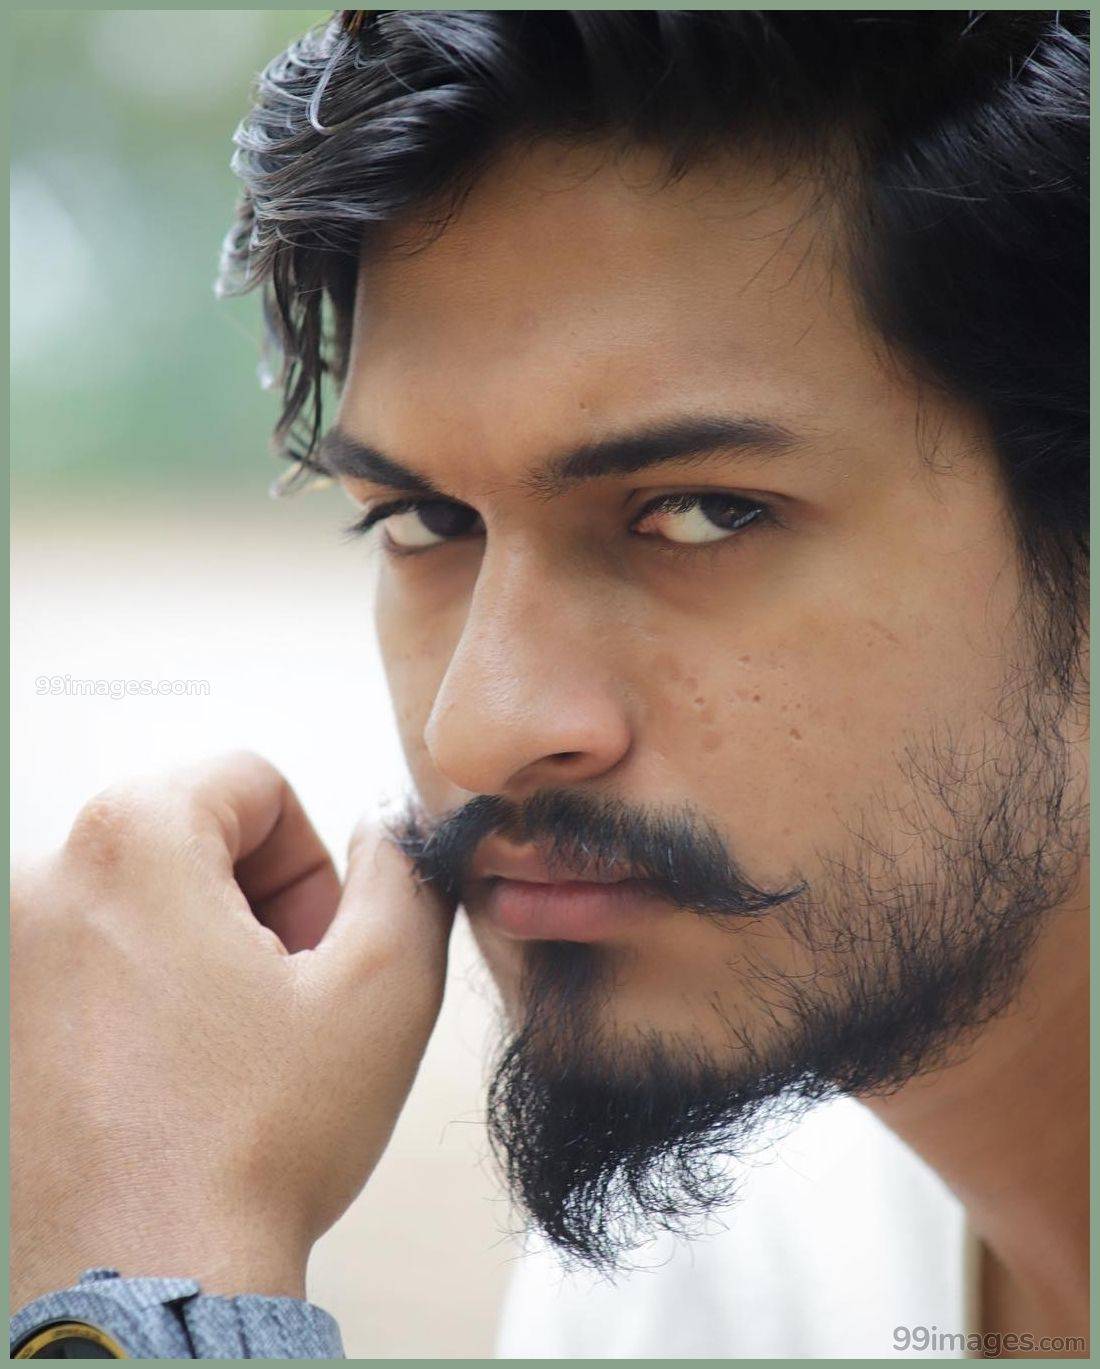 Mugen Rao New Hd Wallpapers High Definition Images 1080p 23355 Mugenrao Actor Singer Director Youtube Hd Wallpaper Image Whatsapp Profile Picture